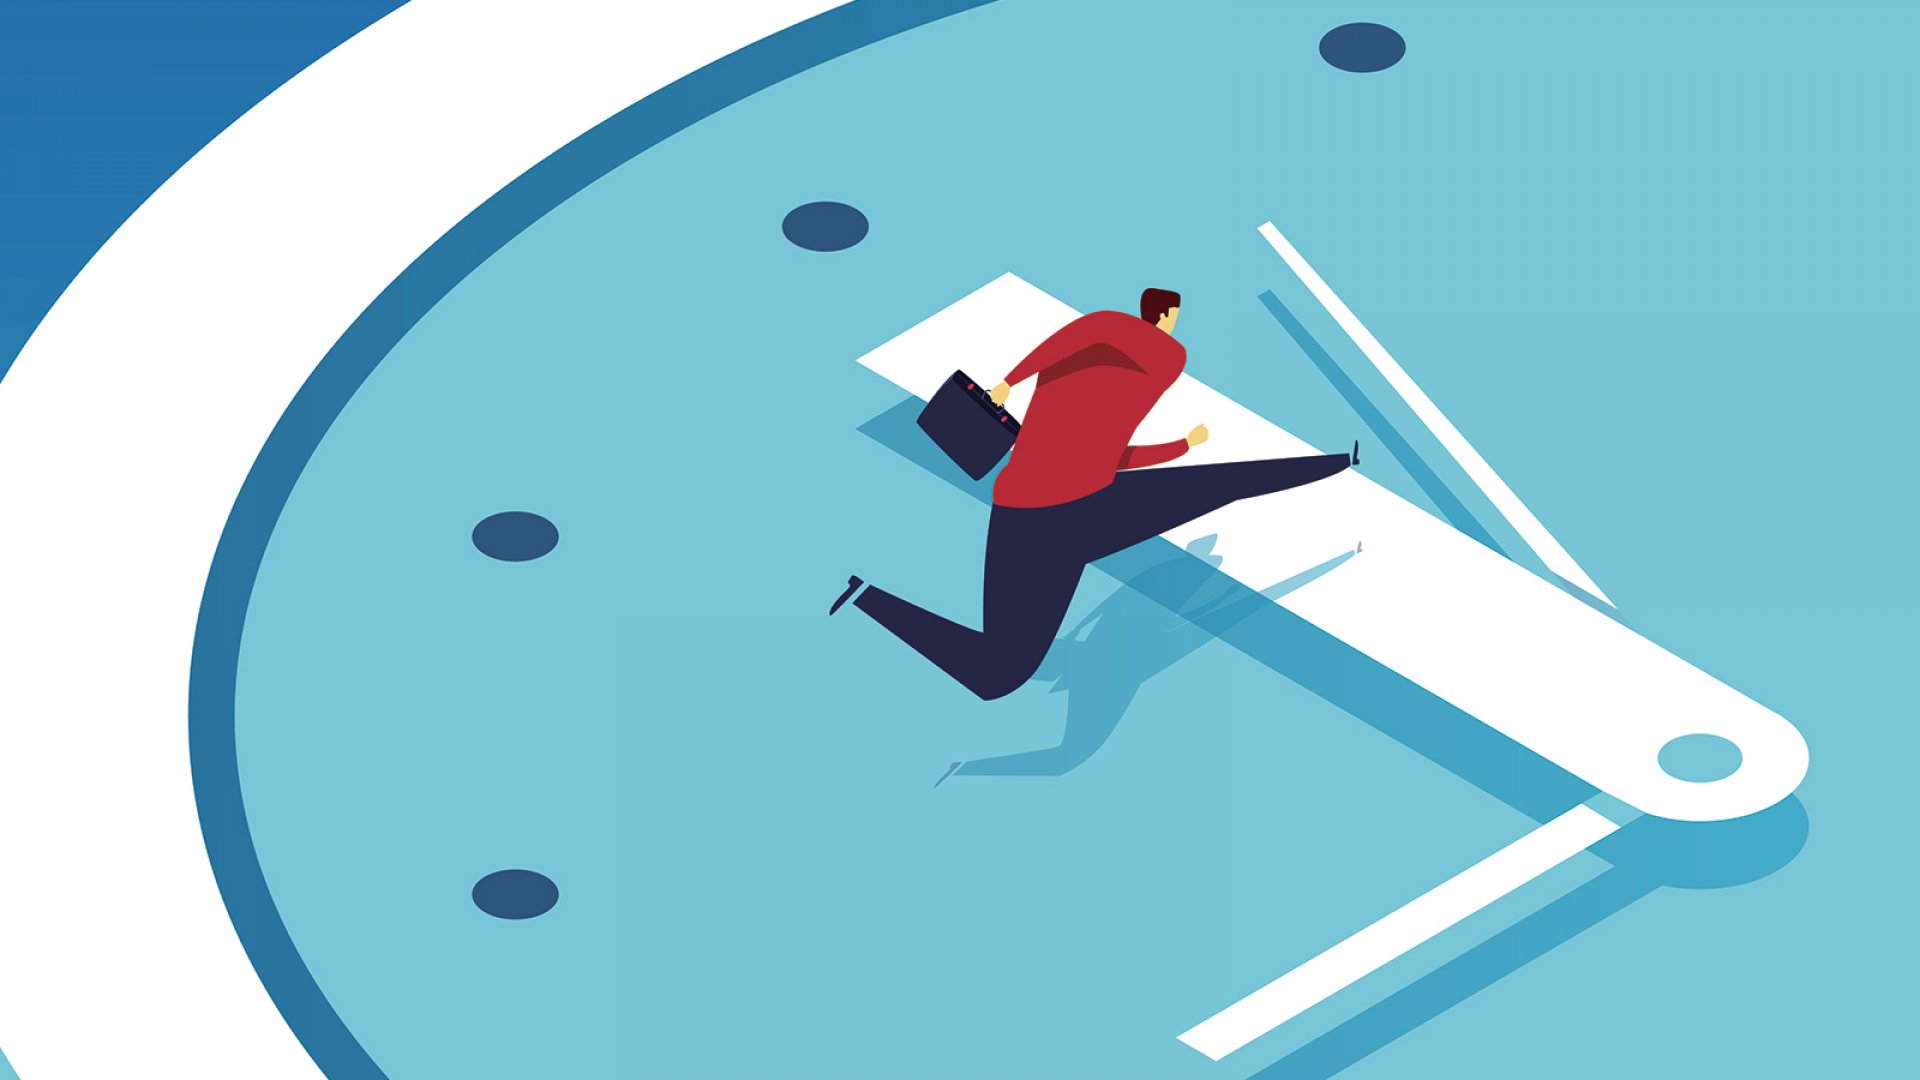 Stanford Professors Find Bosses Often Waste Employees' Time. Here's Why